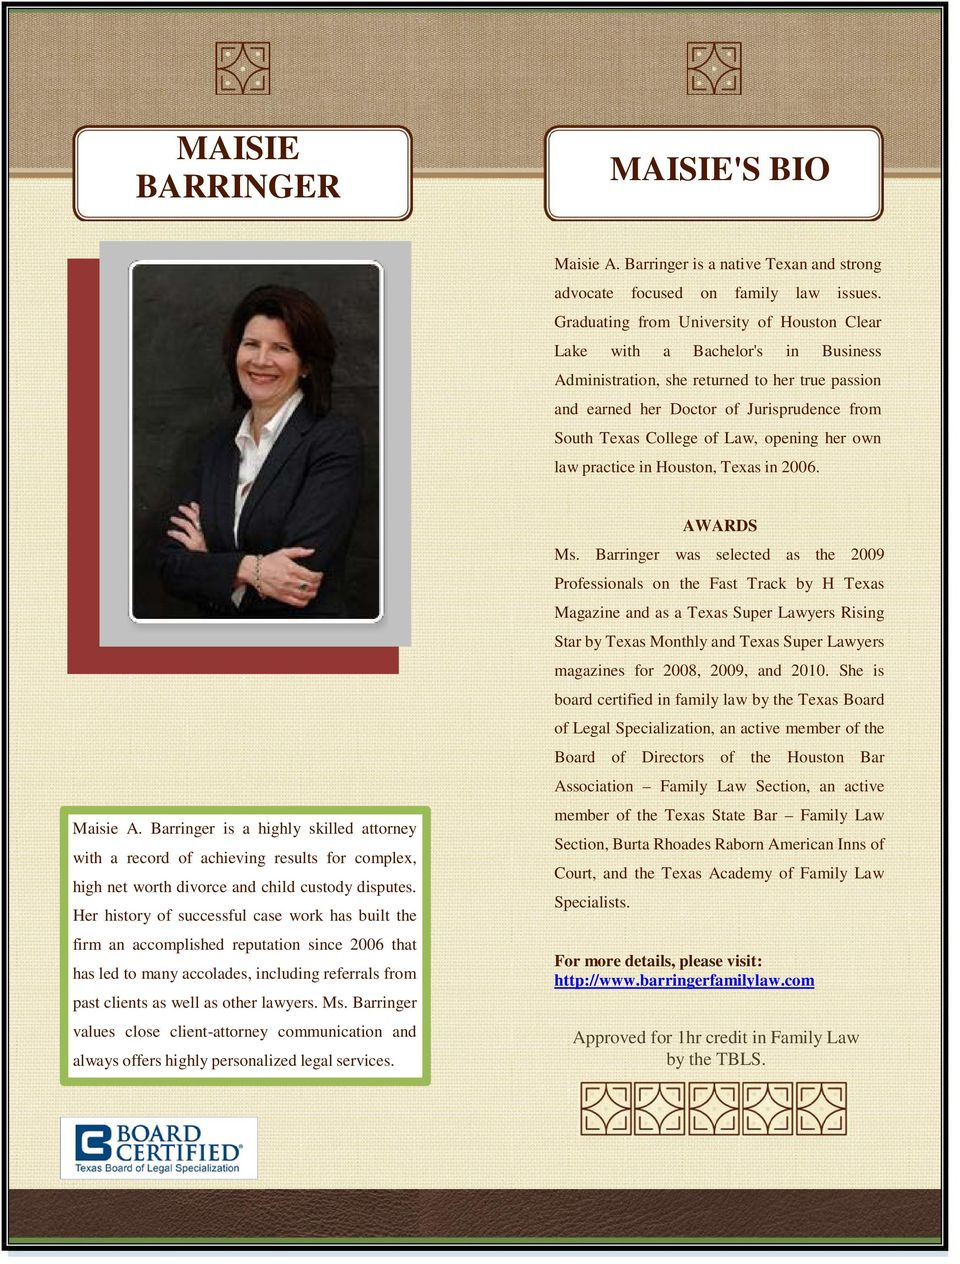 opening her own law practice in Houston, Texas in 2006. Maisie A.